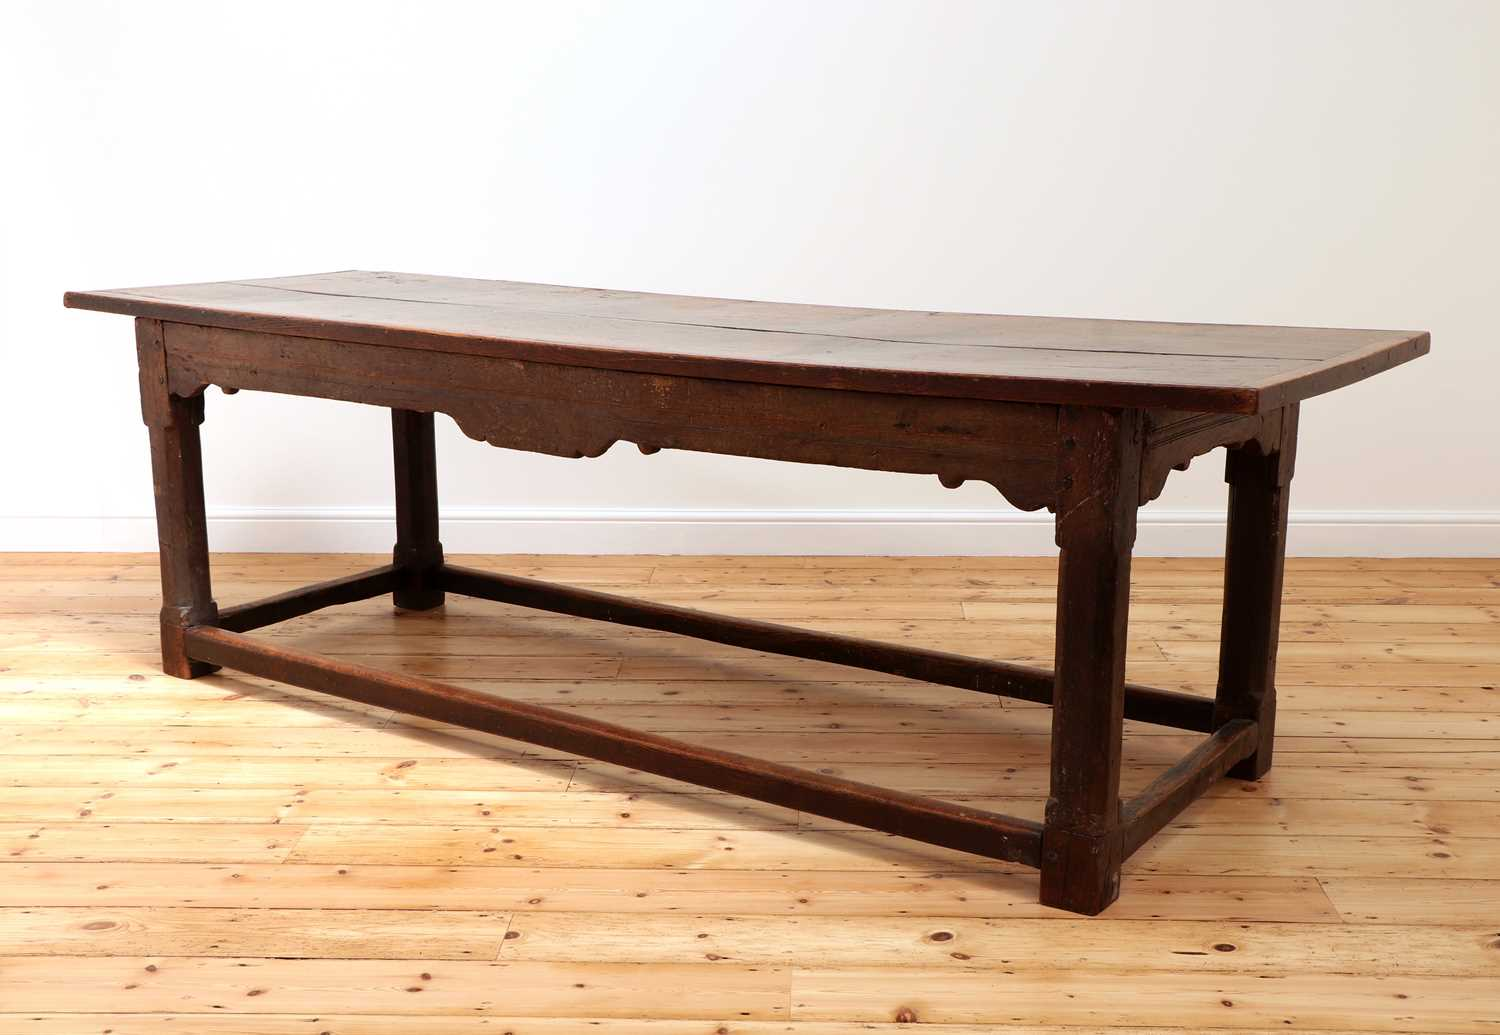 An oak refectory table, - Image 2 of 8